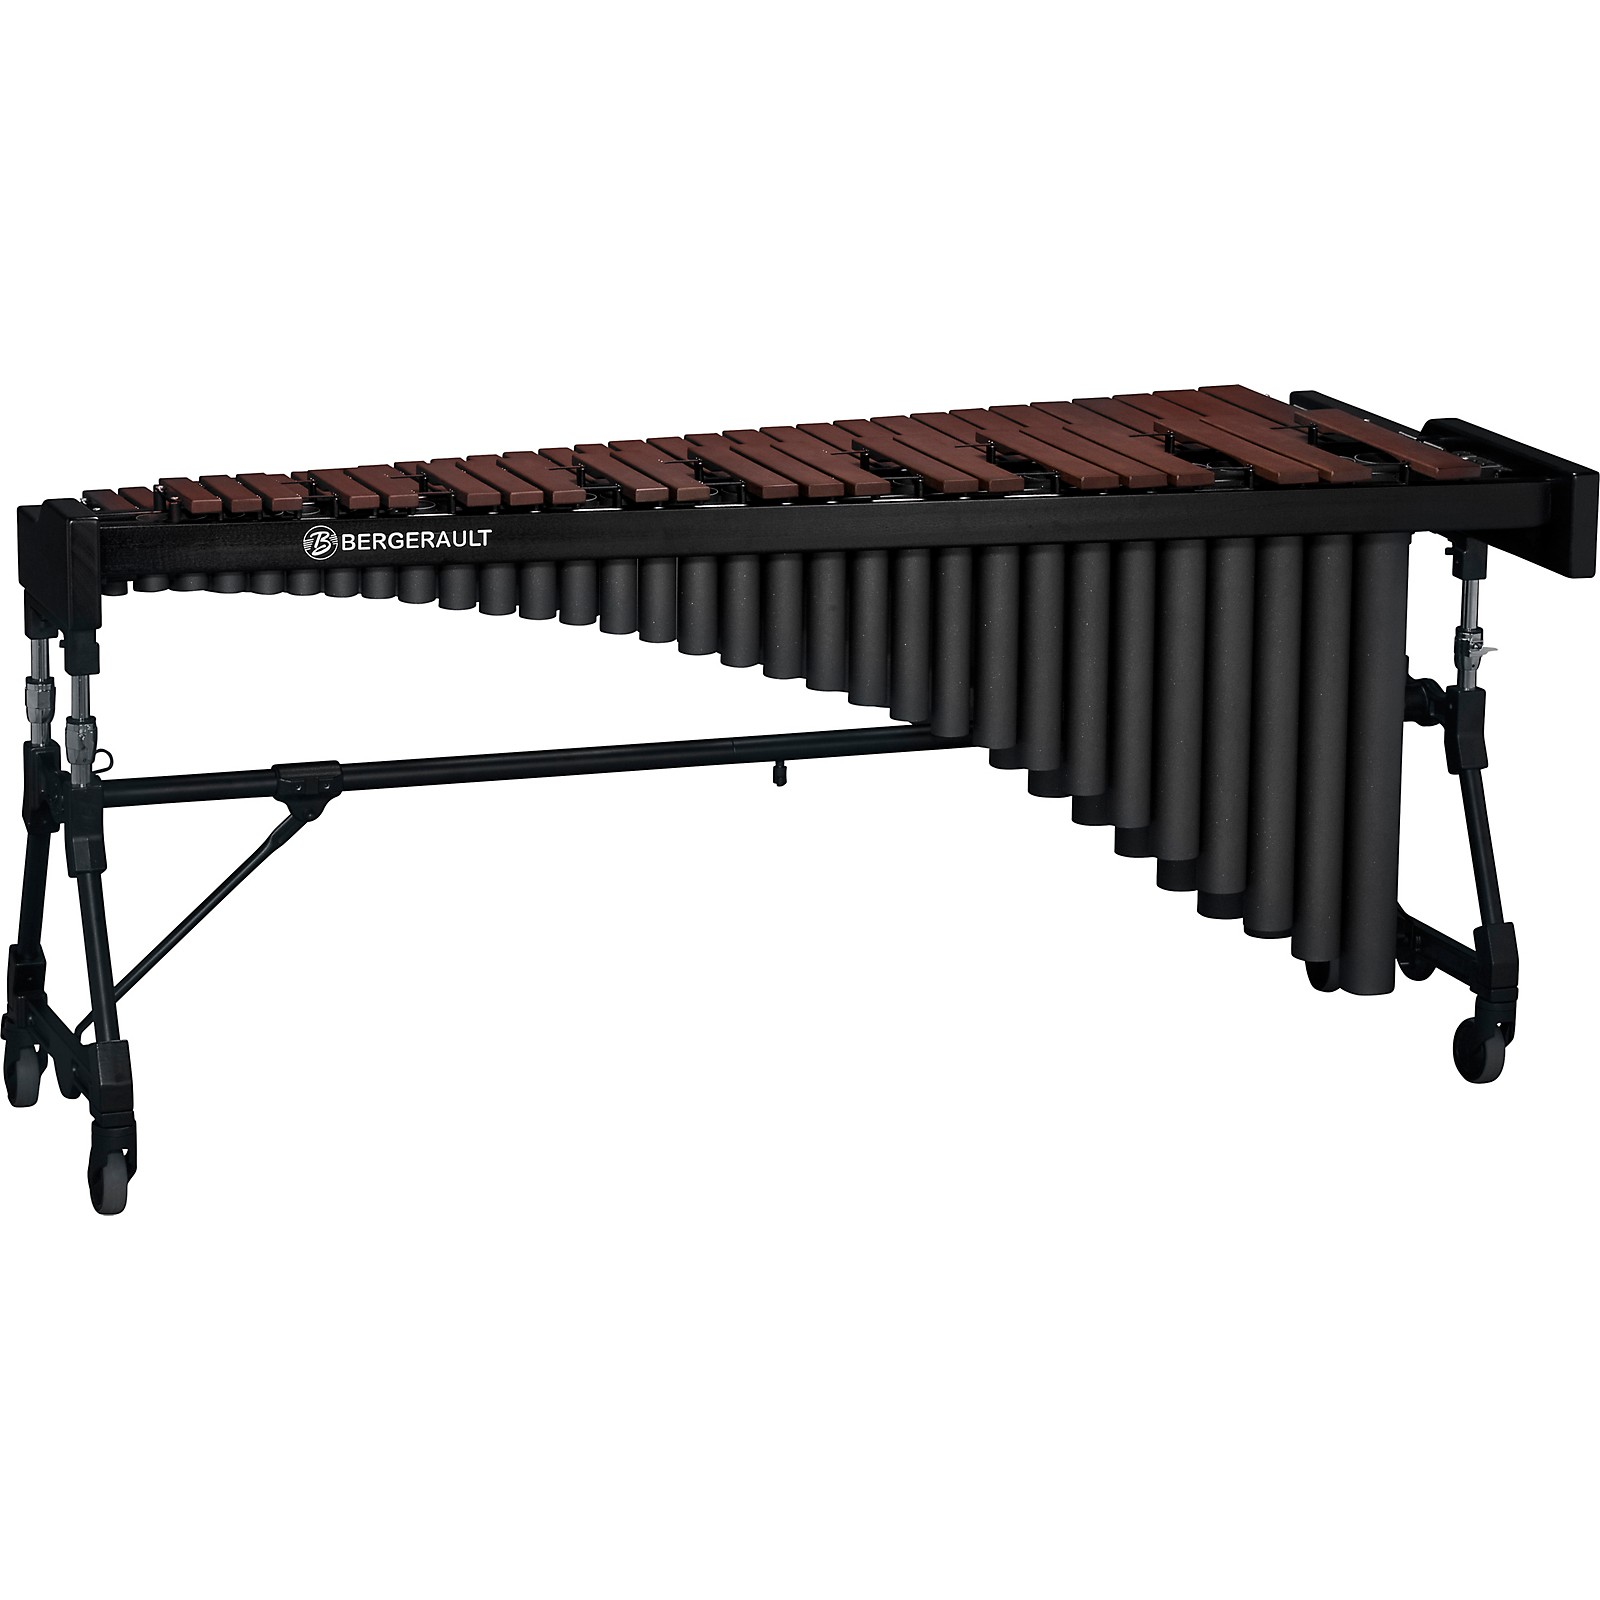 Bergerault Performance Series Marimba